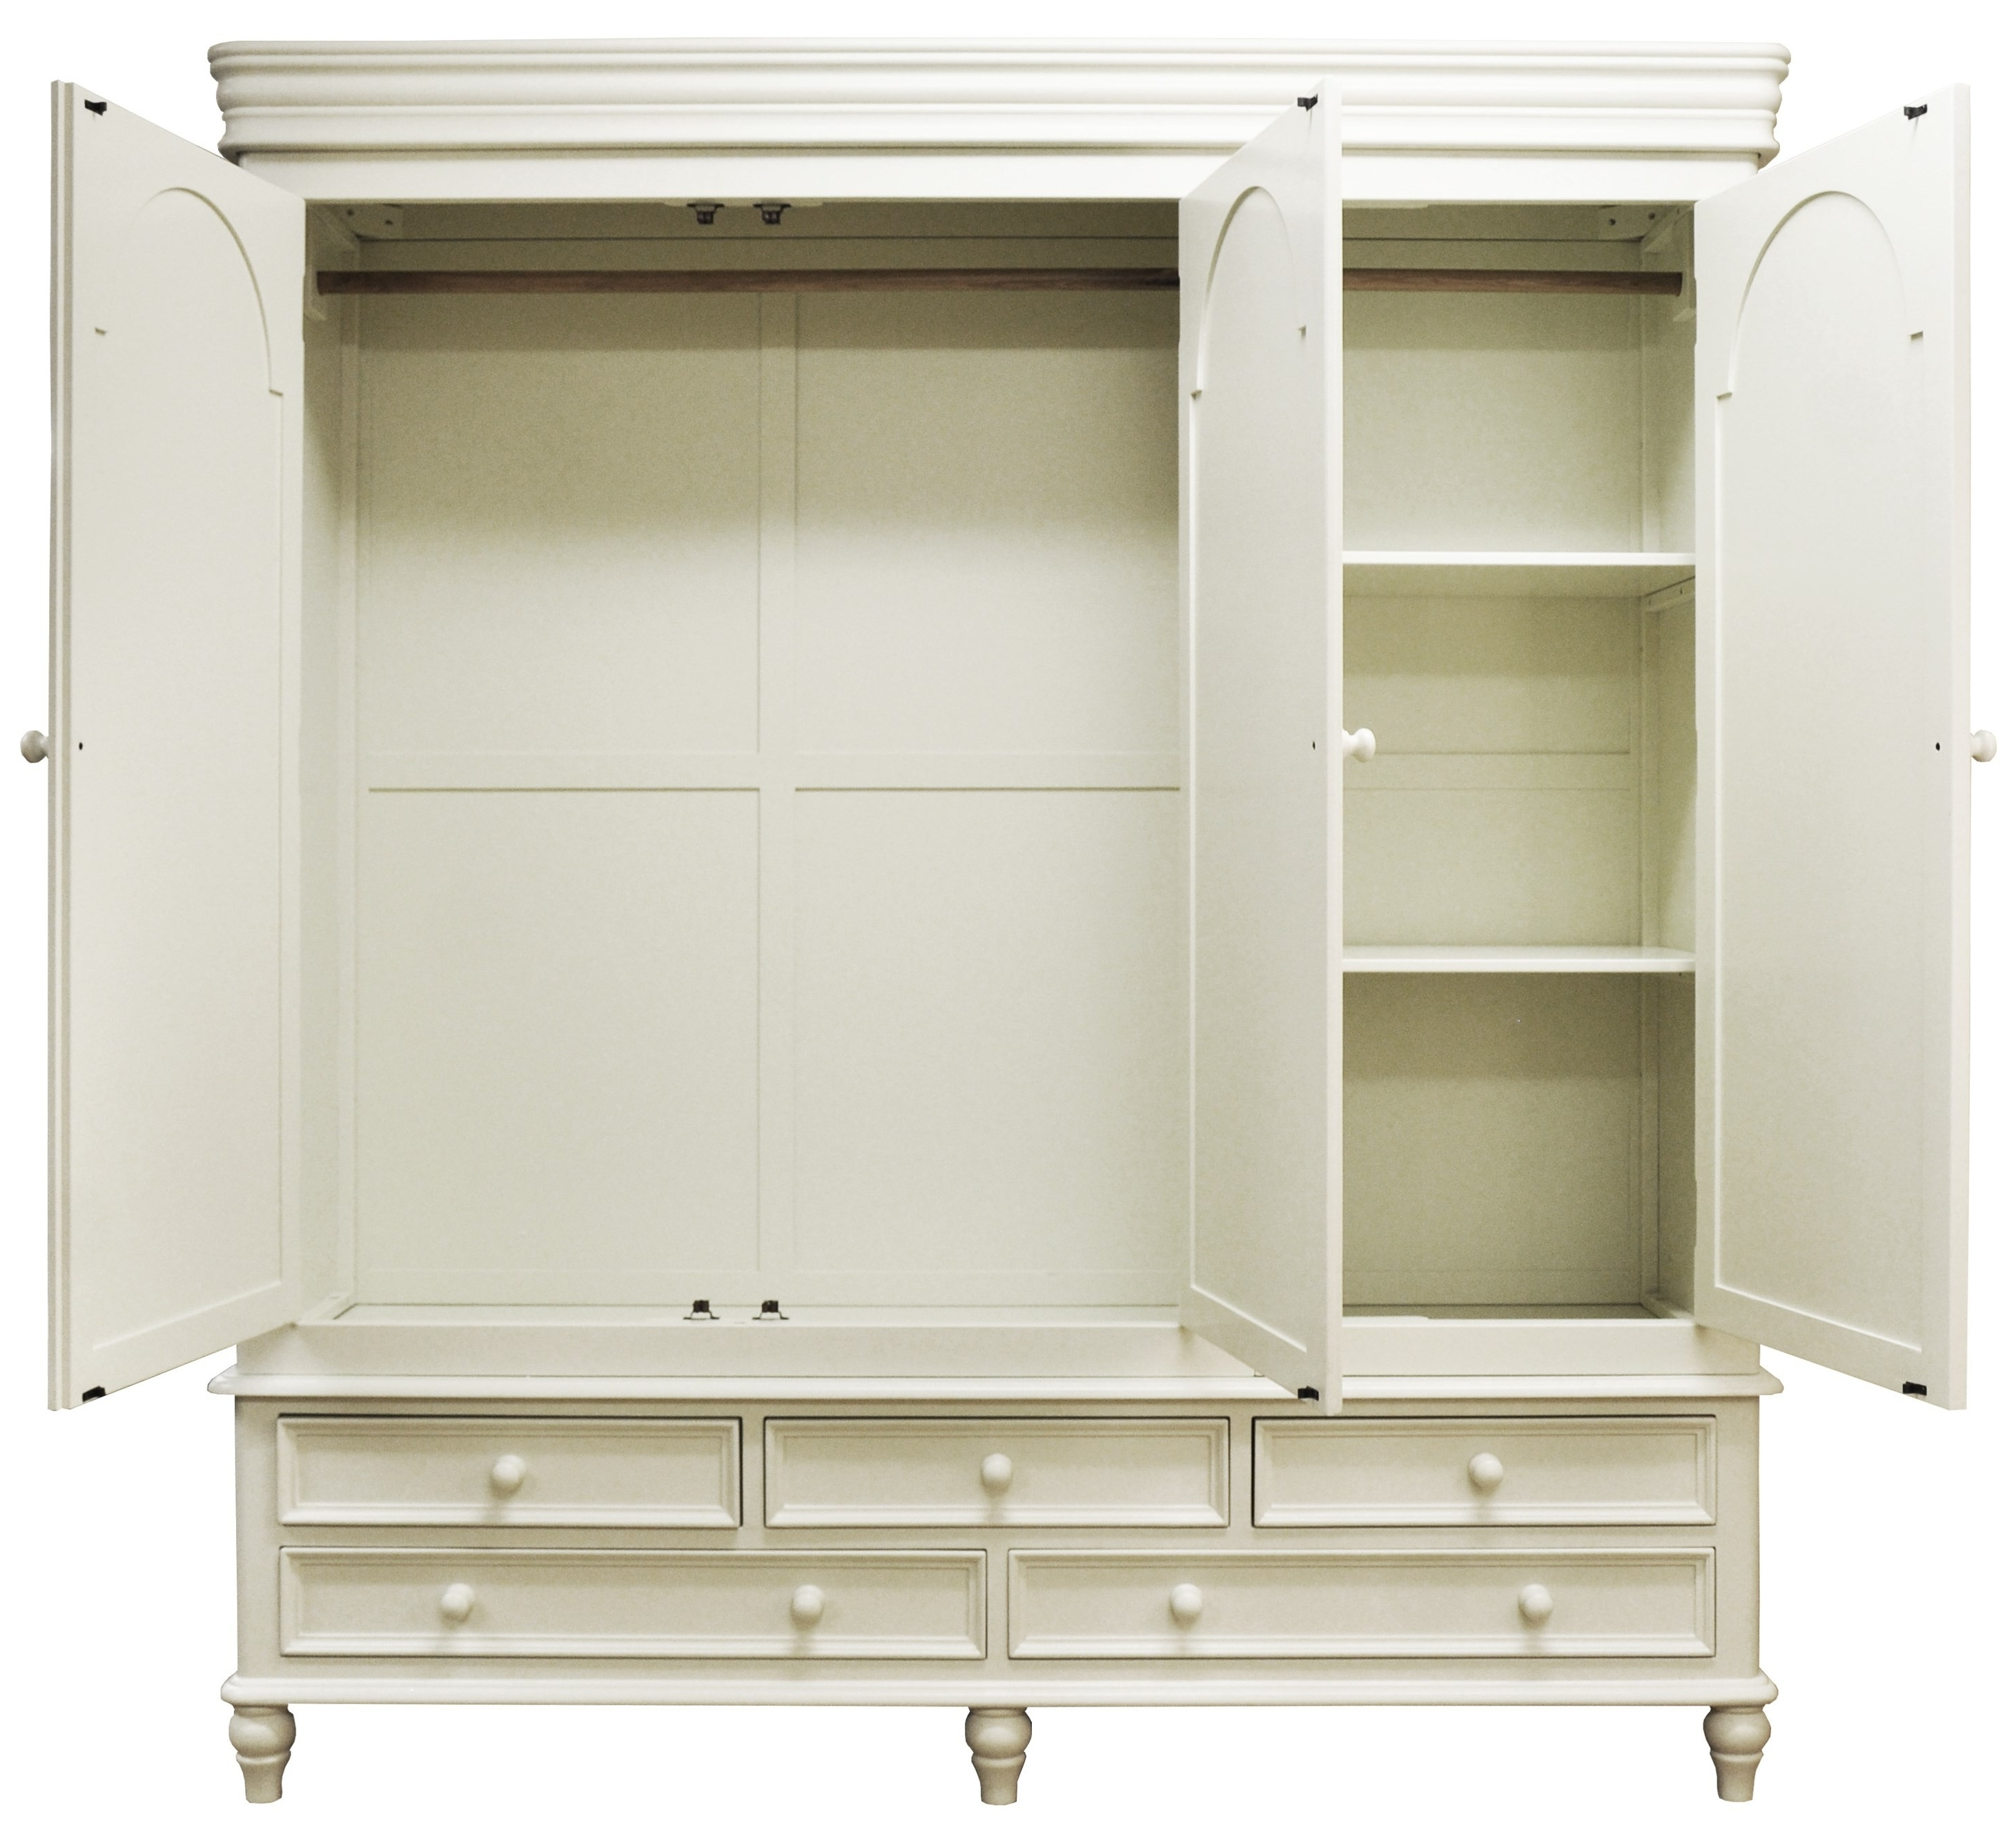 Recent Large White Wooden Wardrobe With Many Drawers On The Bottom With Hanging Wardrobes Shelves (View 13 of 15)